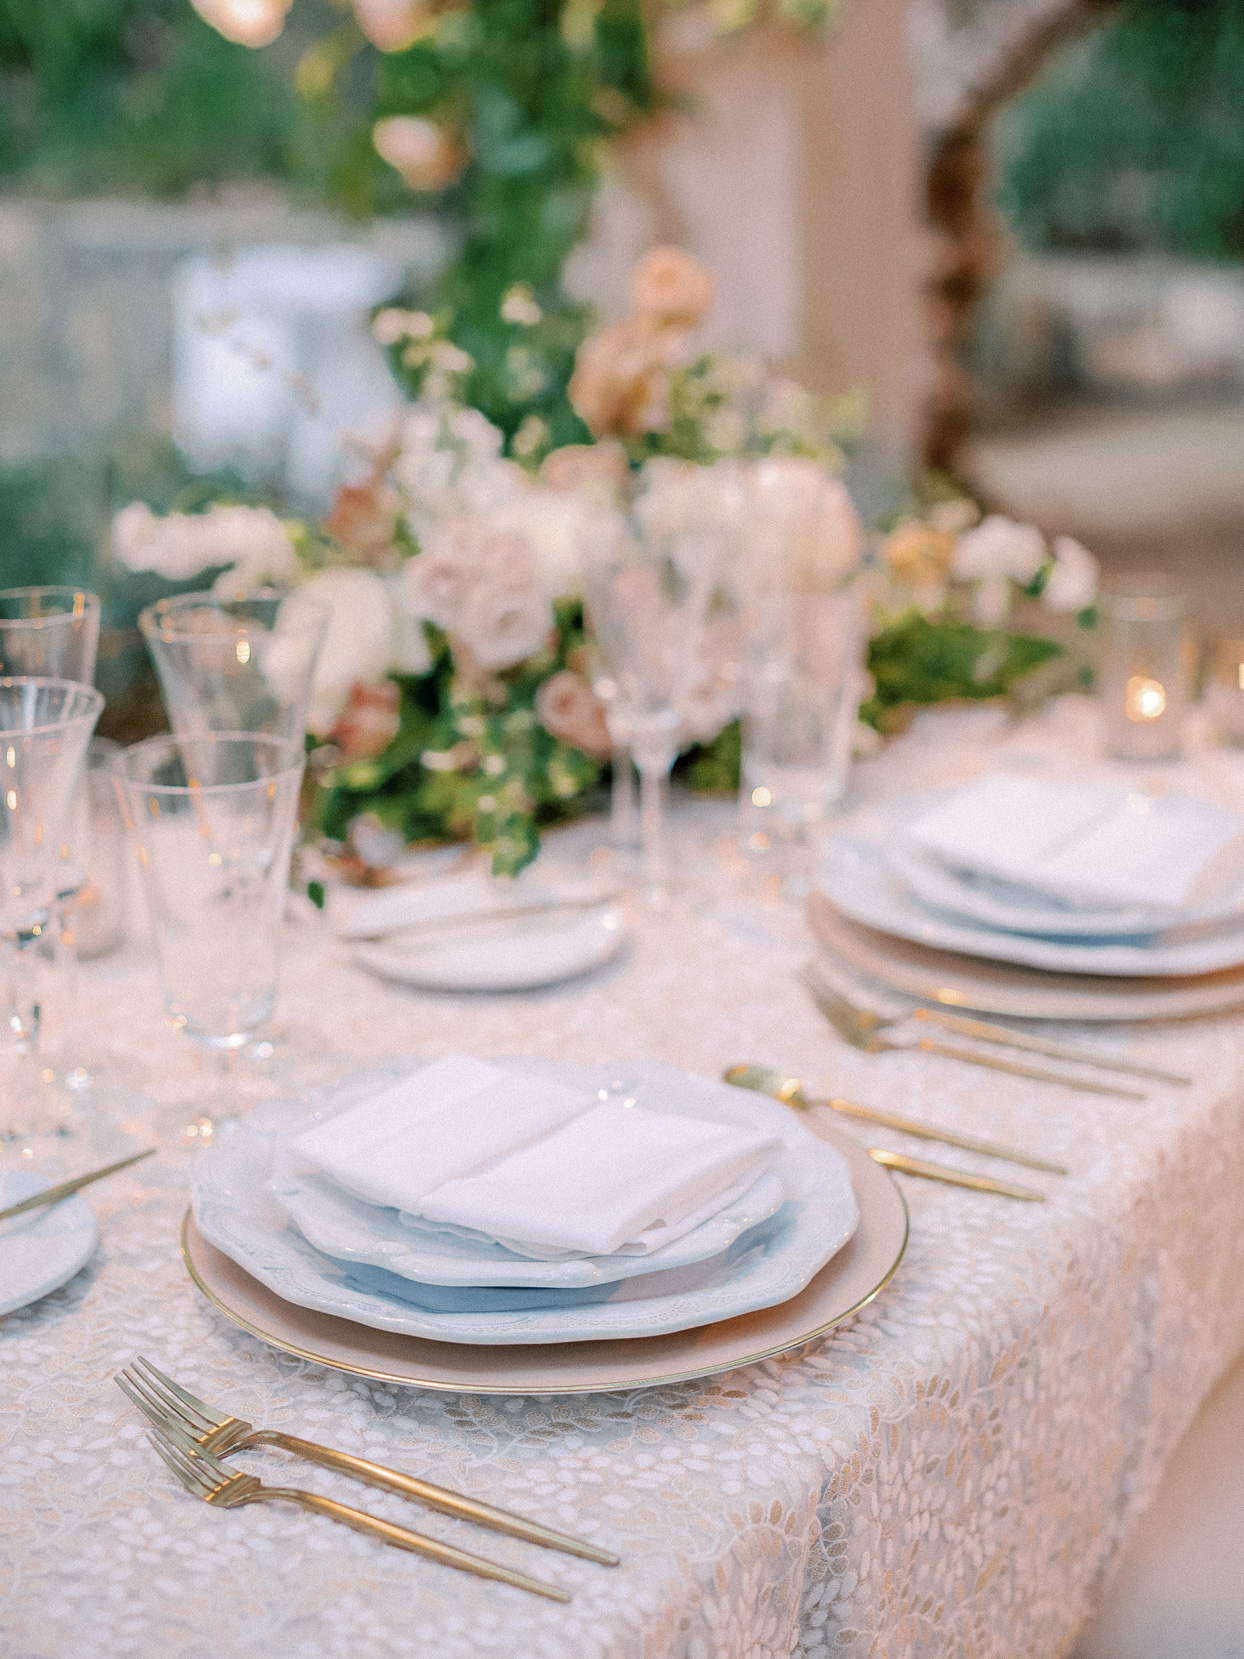 table setting with pink china and gold utensils